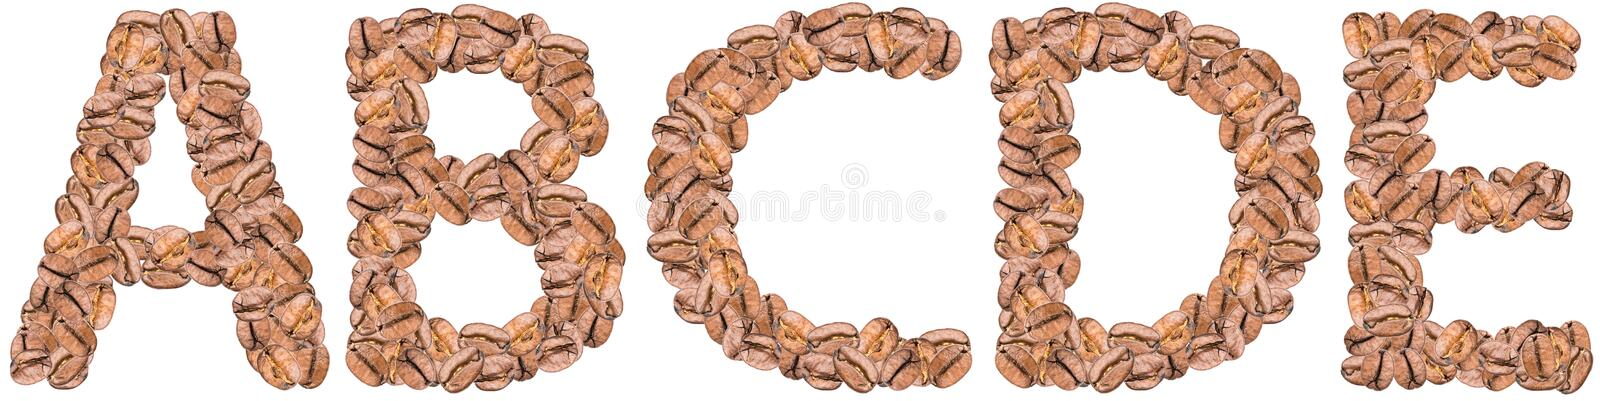 Coffee Alphabet Letters A-E royalty free stock image